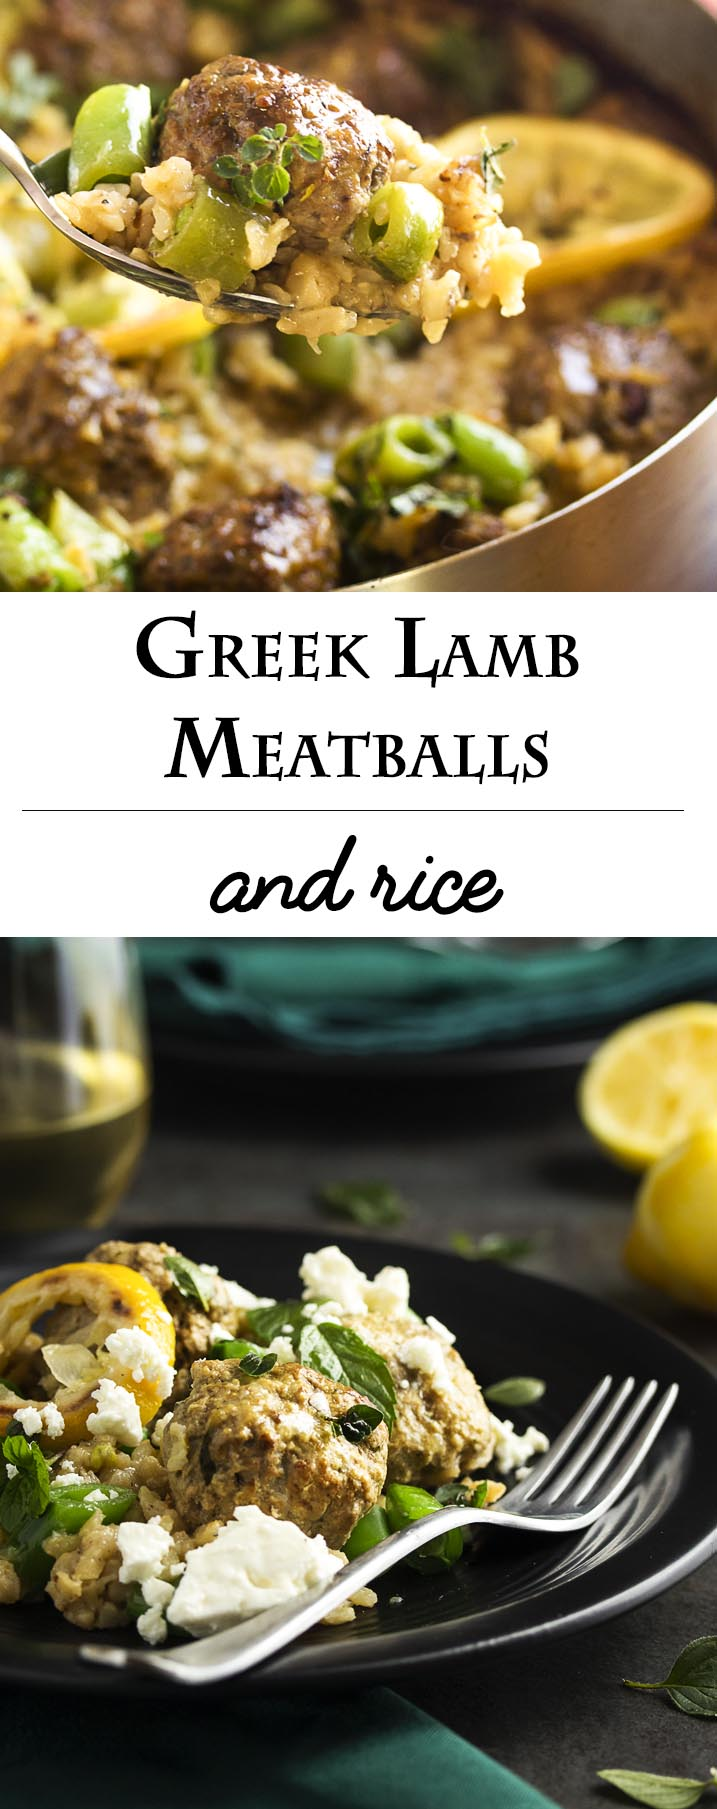 Great and easy one pot meal which starts on the stove and finishes in the oven! Greek lamb meatballs and brown rice is a healthy, complete meal full of the flavors of mint and thyme and finished with a crumble of feta. | justalittlebitofbacon.com